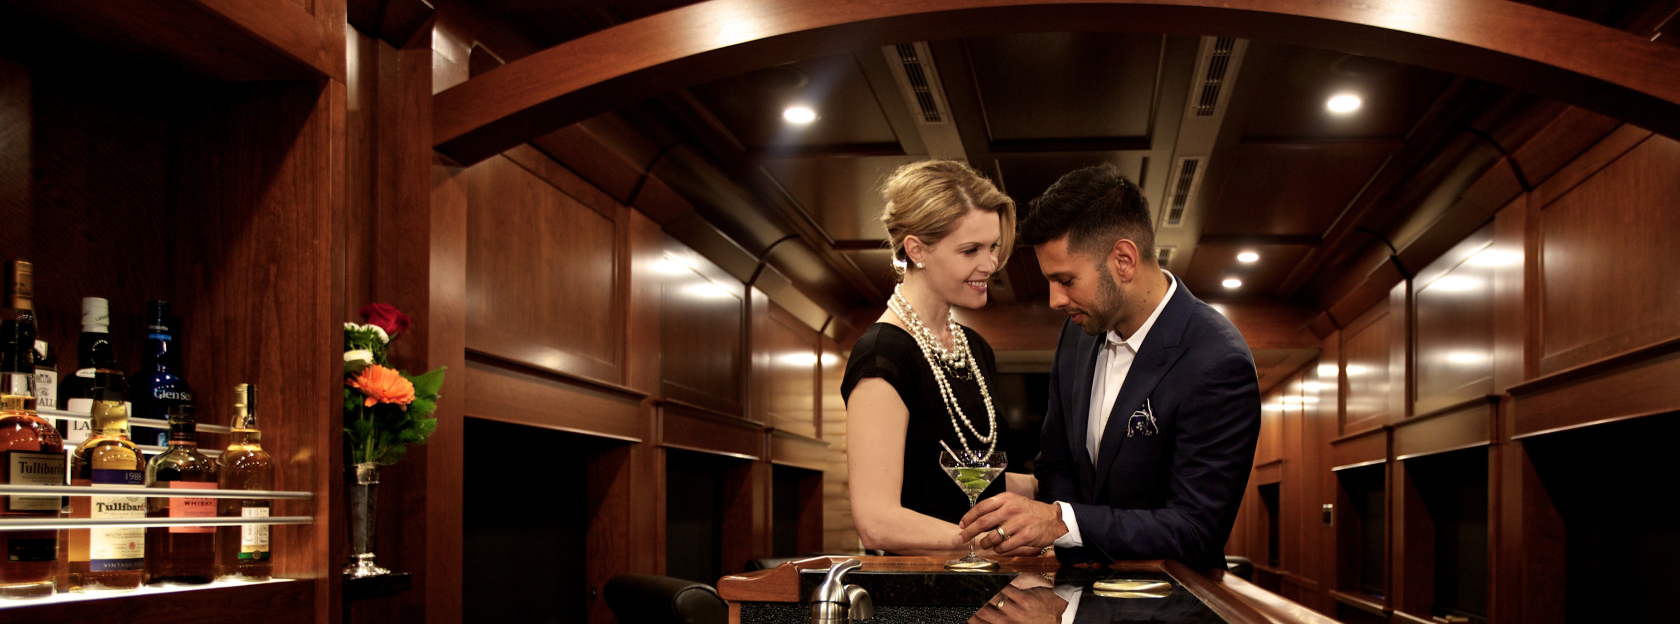 Two people dressed in formal attire at a bar inside of a rail car.